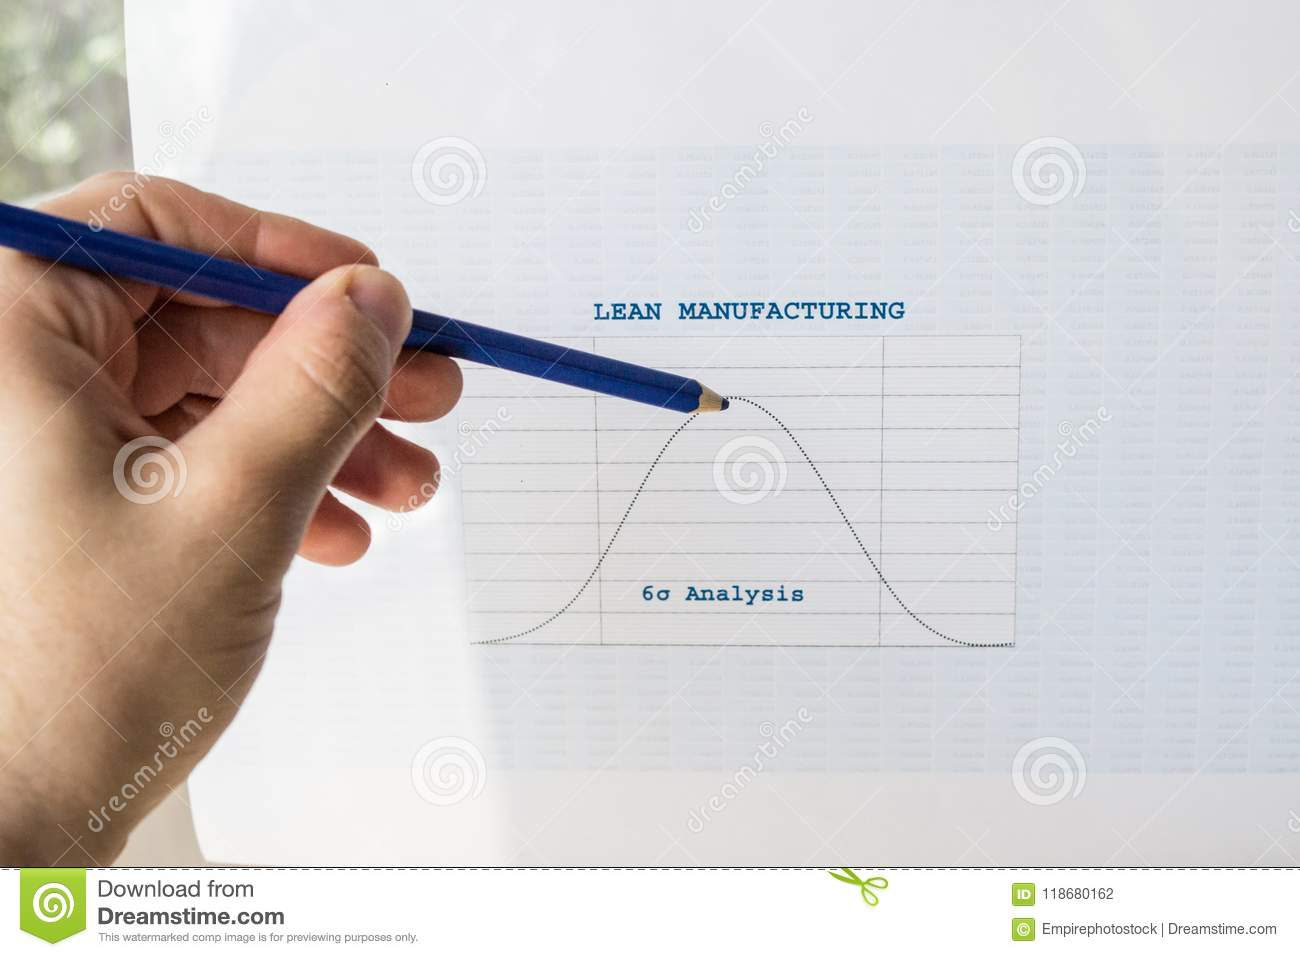 Lean Manufacturing Six Sigma Chart Stock Photo - Image of ...